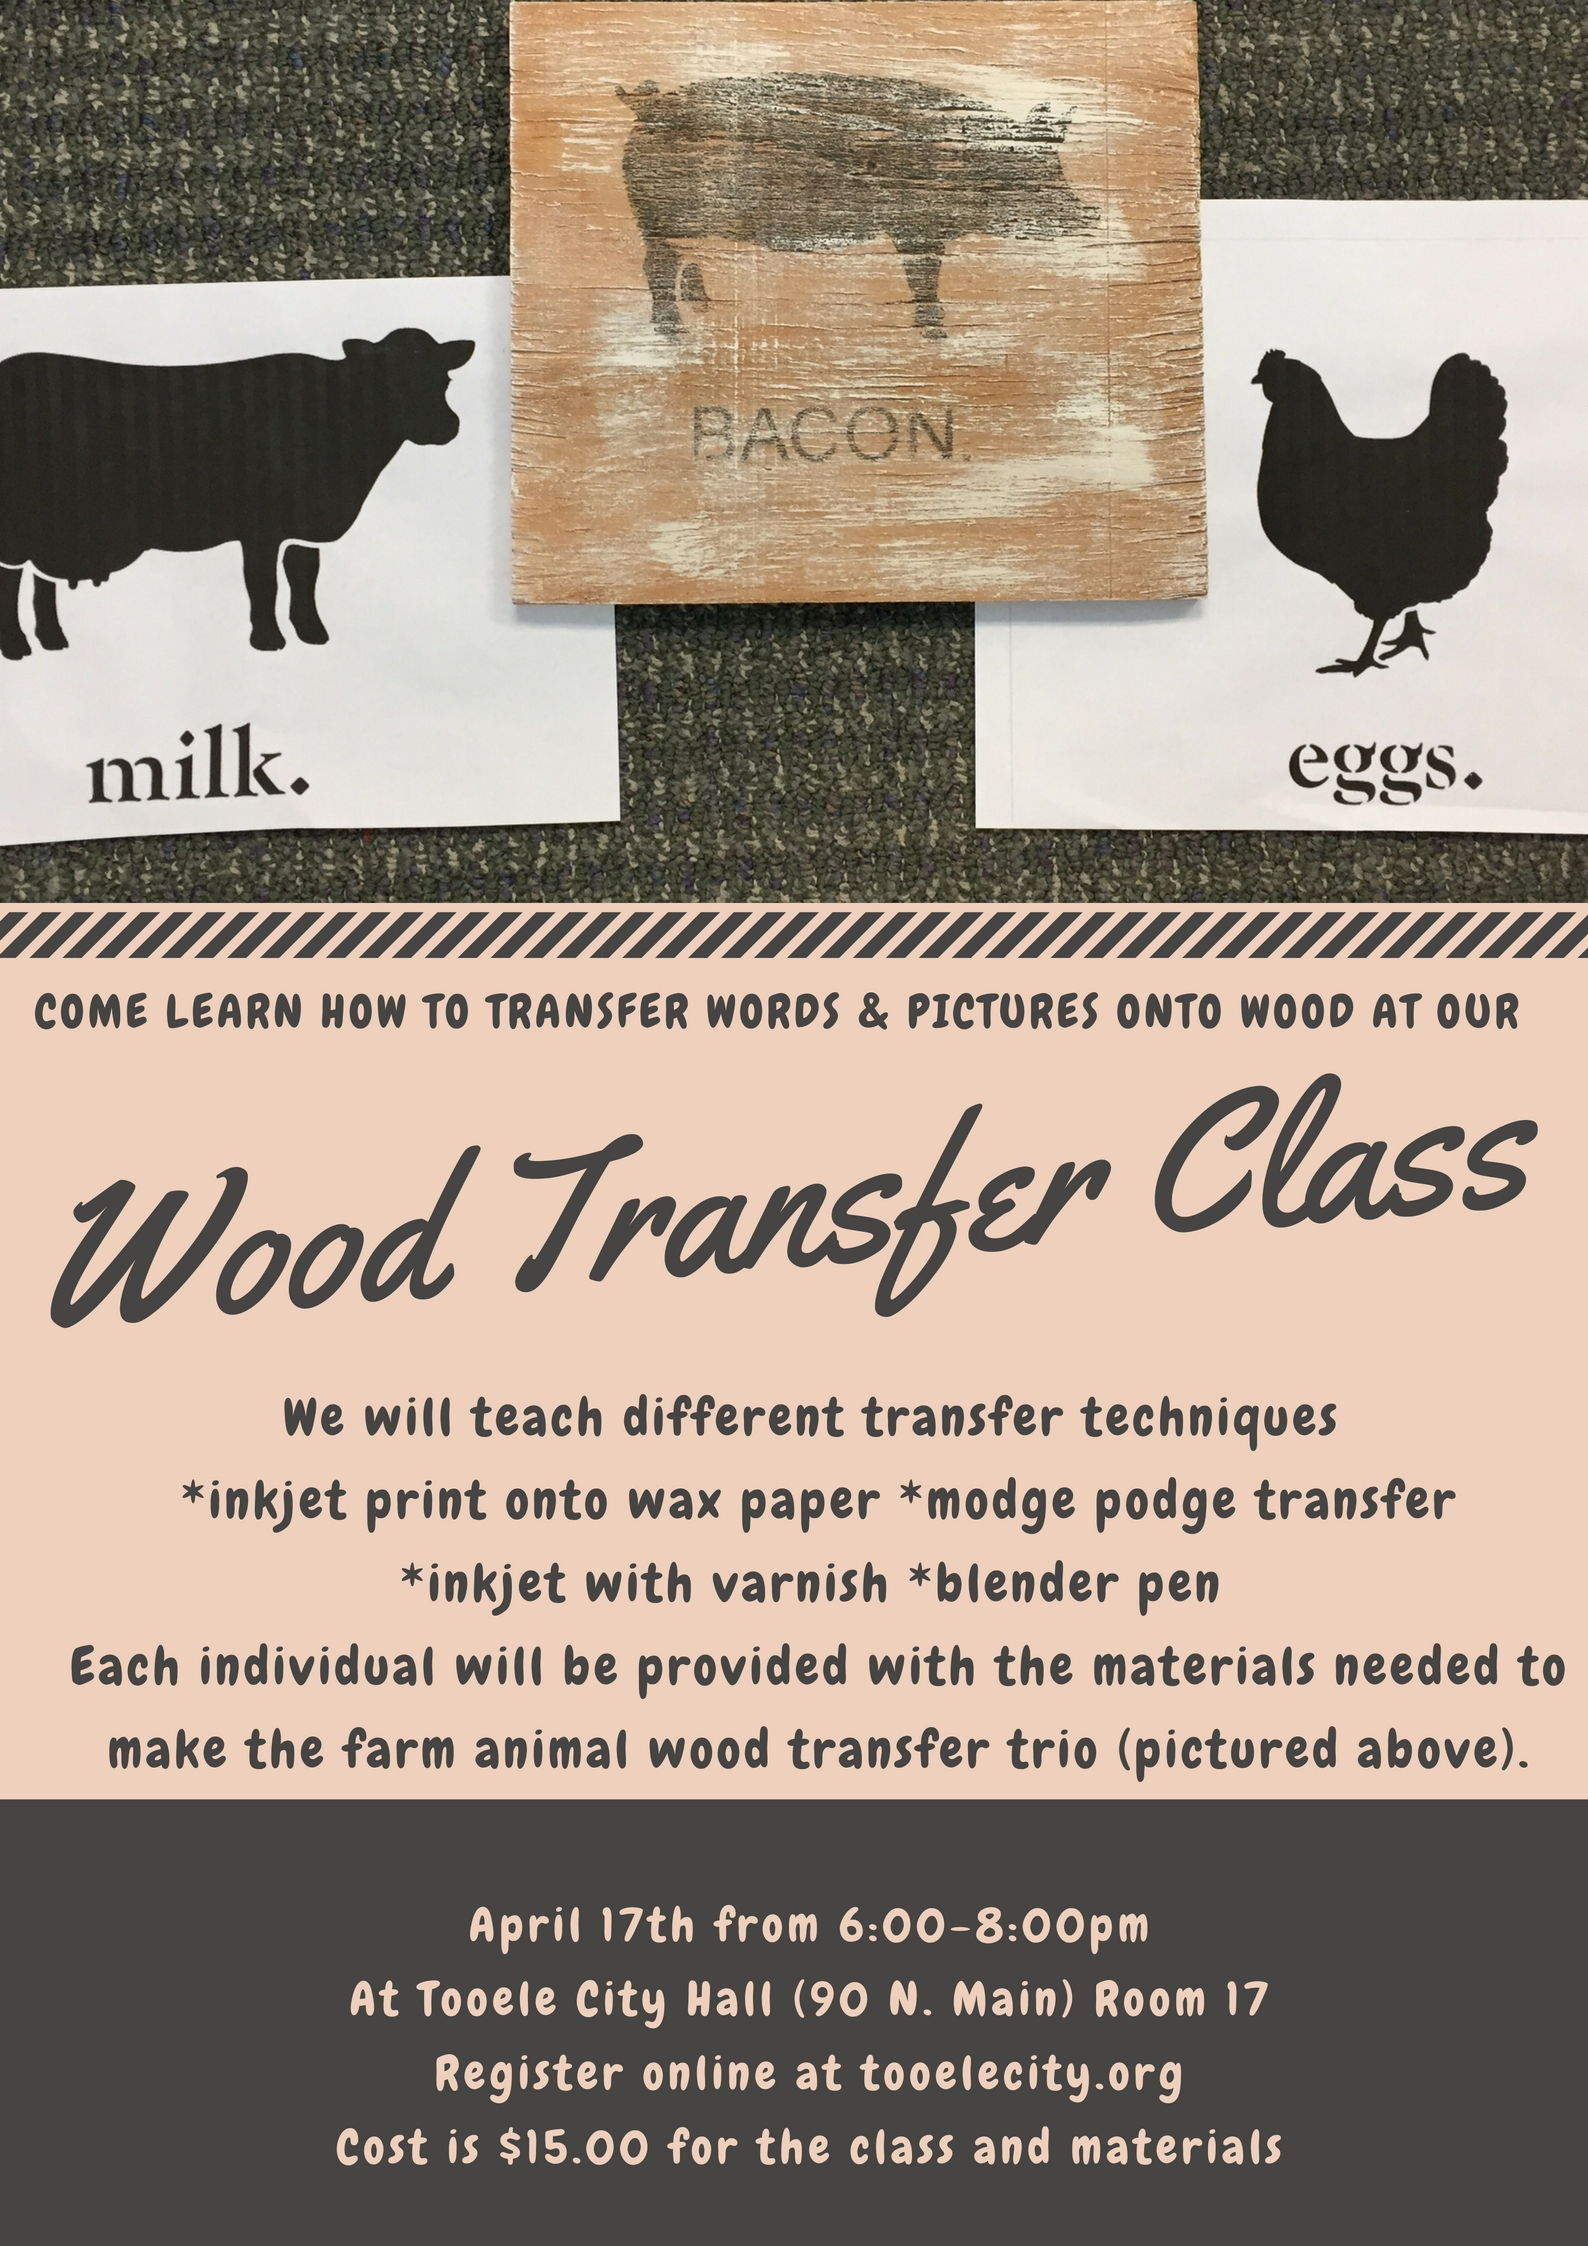 Wood Transfer Class @ Tooele City Hall, Room 17 | Tooele | Utah | United States